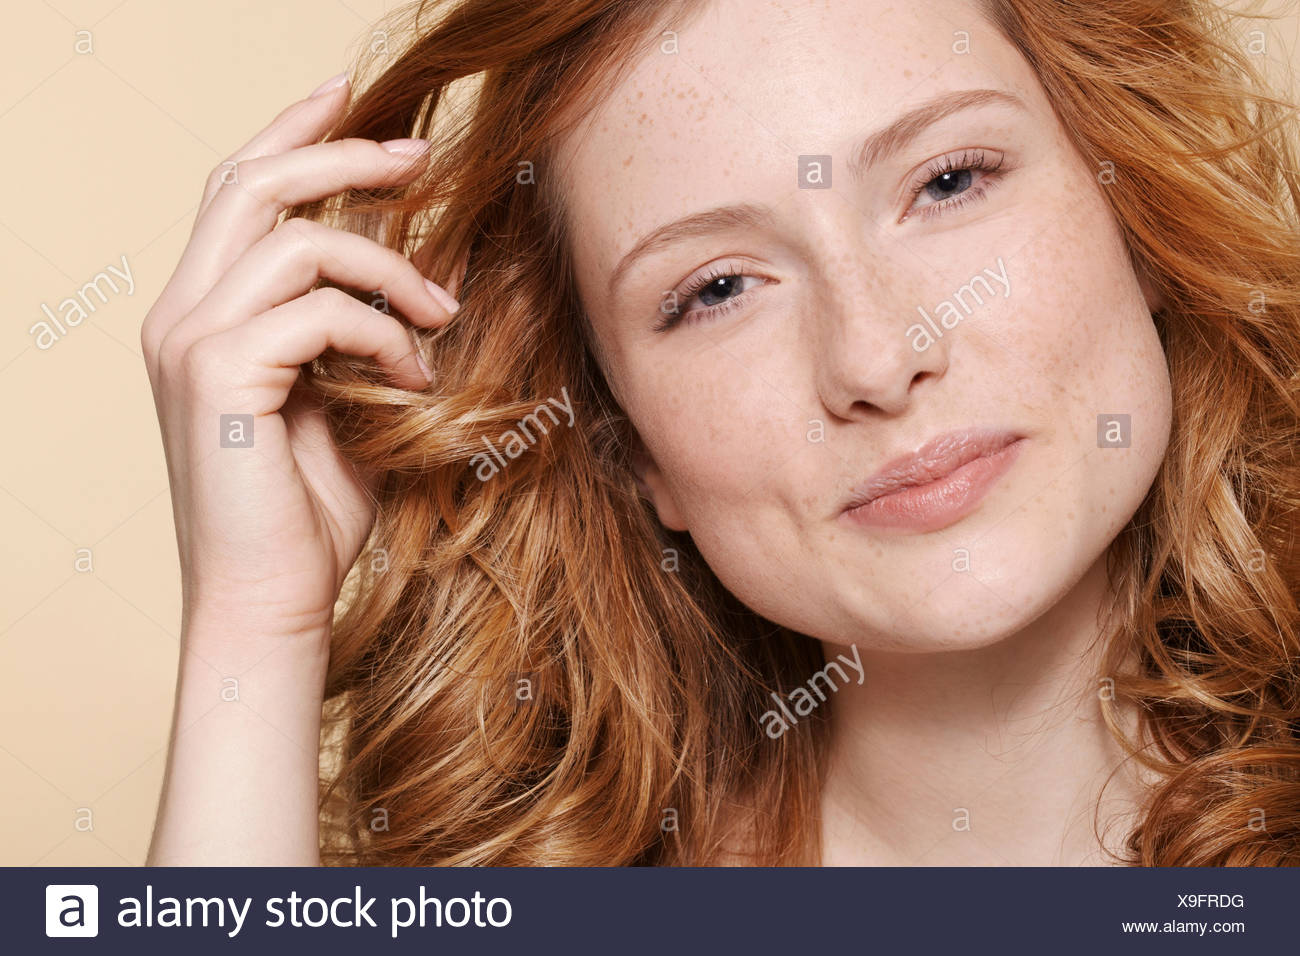 Studio shot of young woman with curly red hair, hand in hair - Stock Image